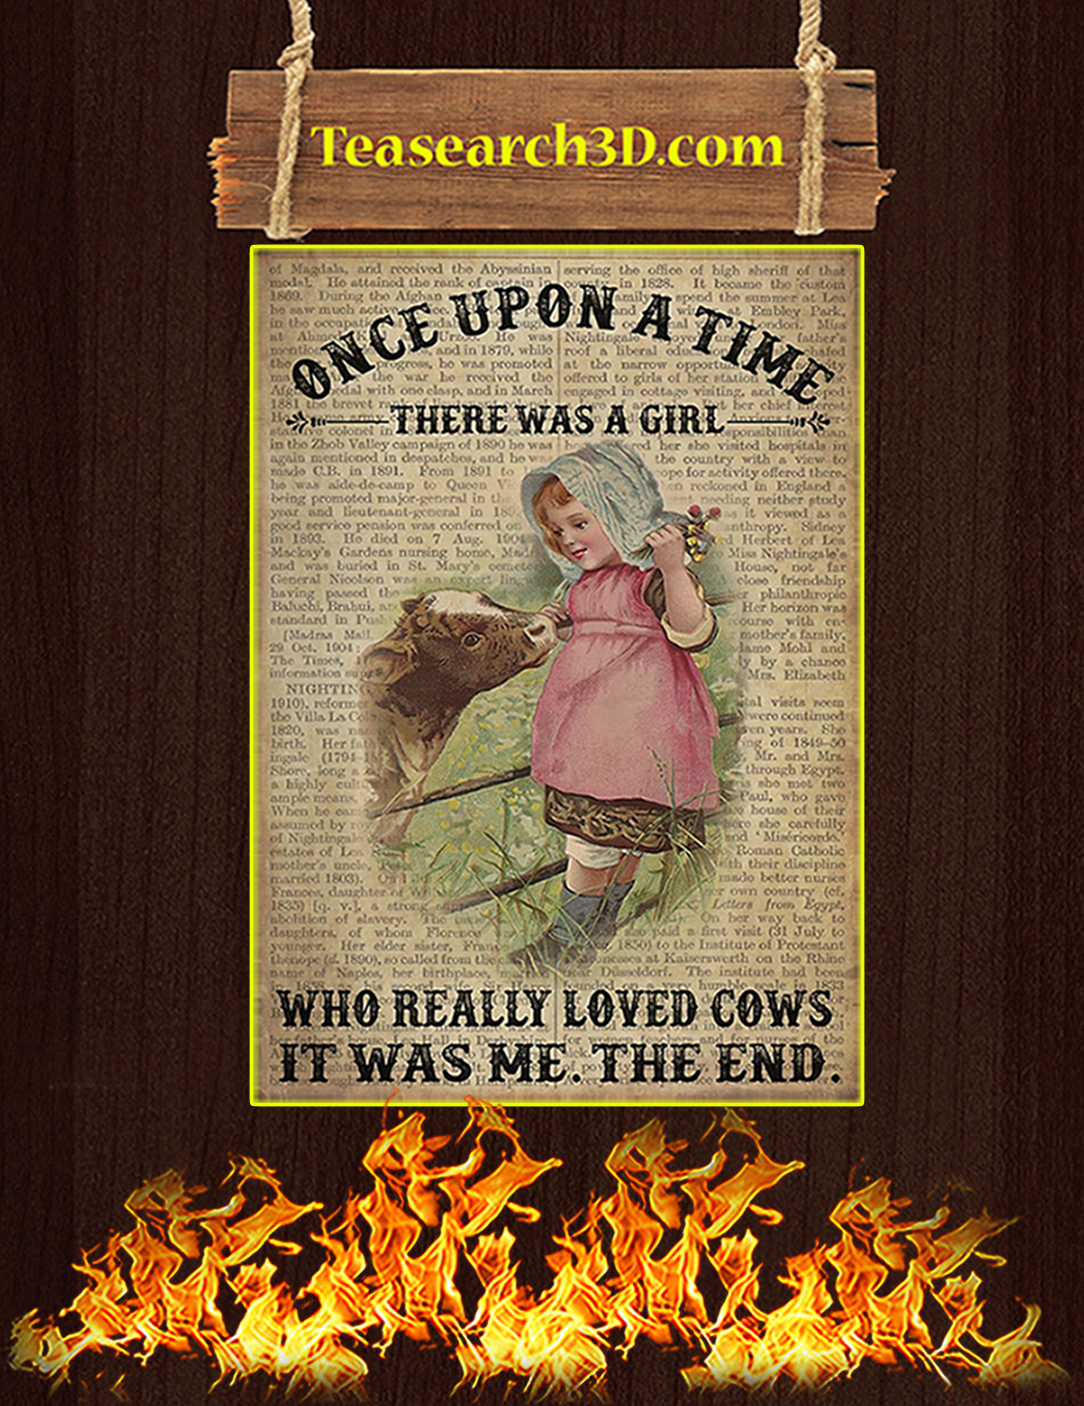 Once upon a time there was a girl who really loved cows poster A2